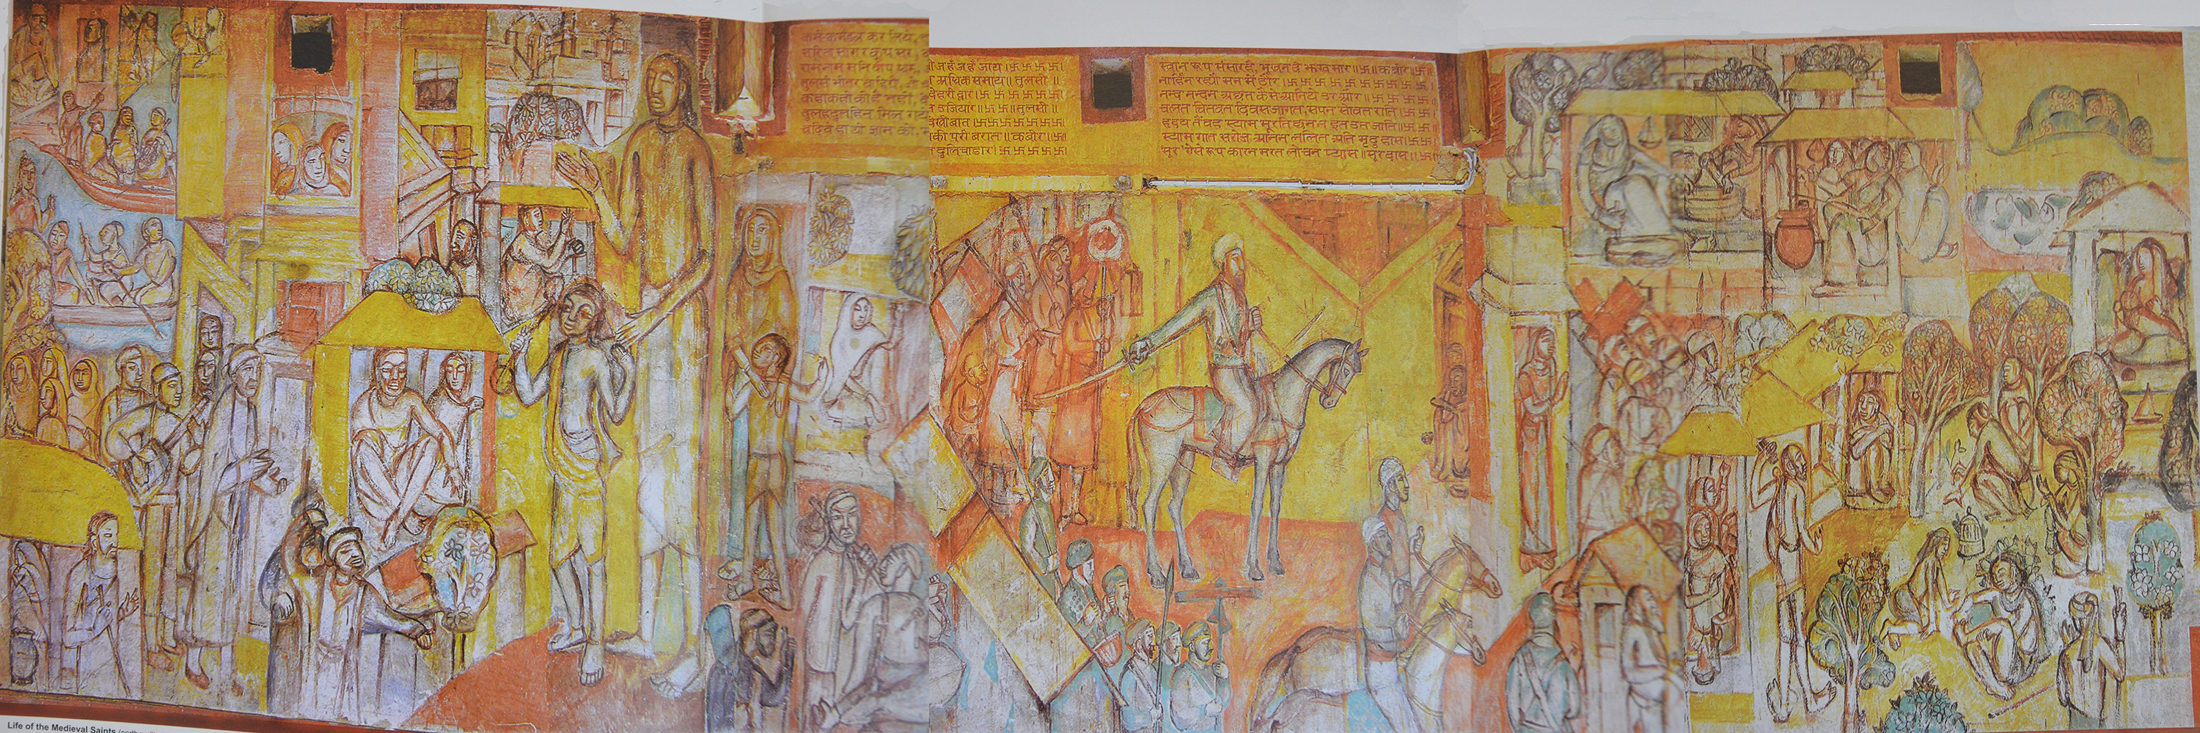 On benod behari mukherjees mural medieval saints tagore life of medieval saints north wall hindi bhavanweb amipublicfo Image collections